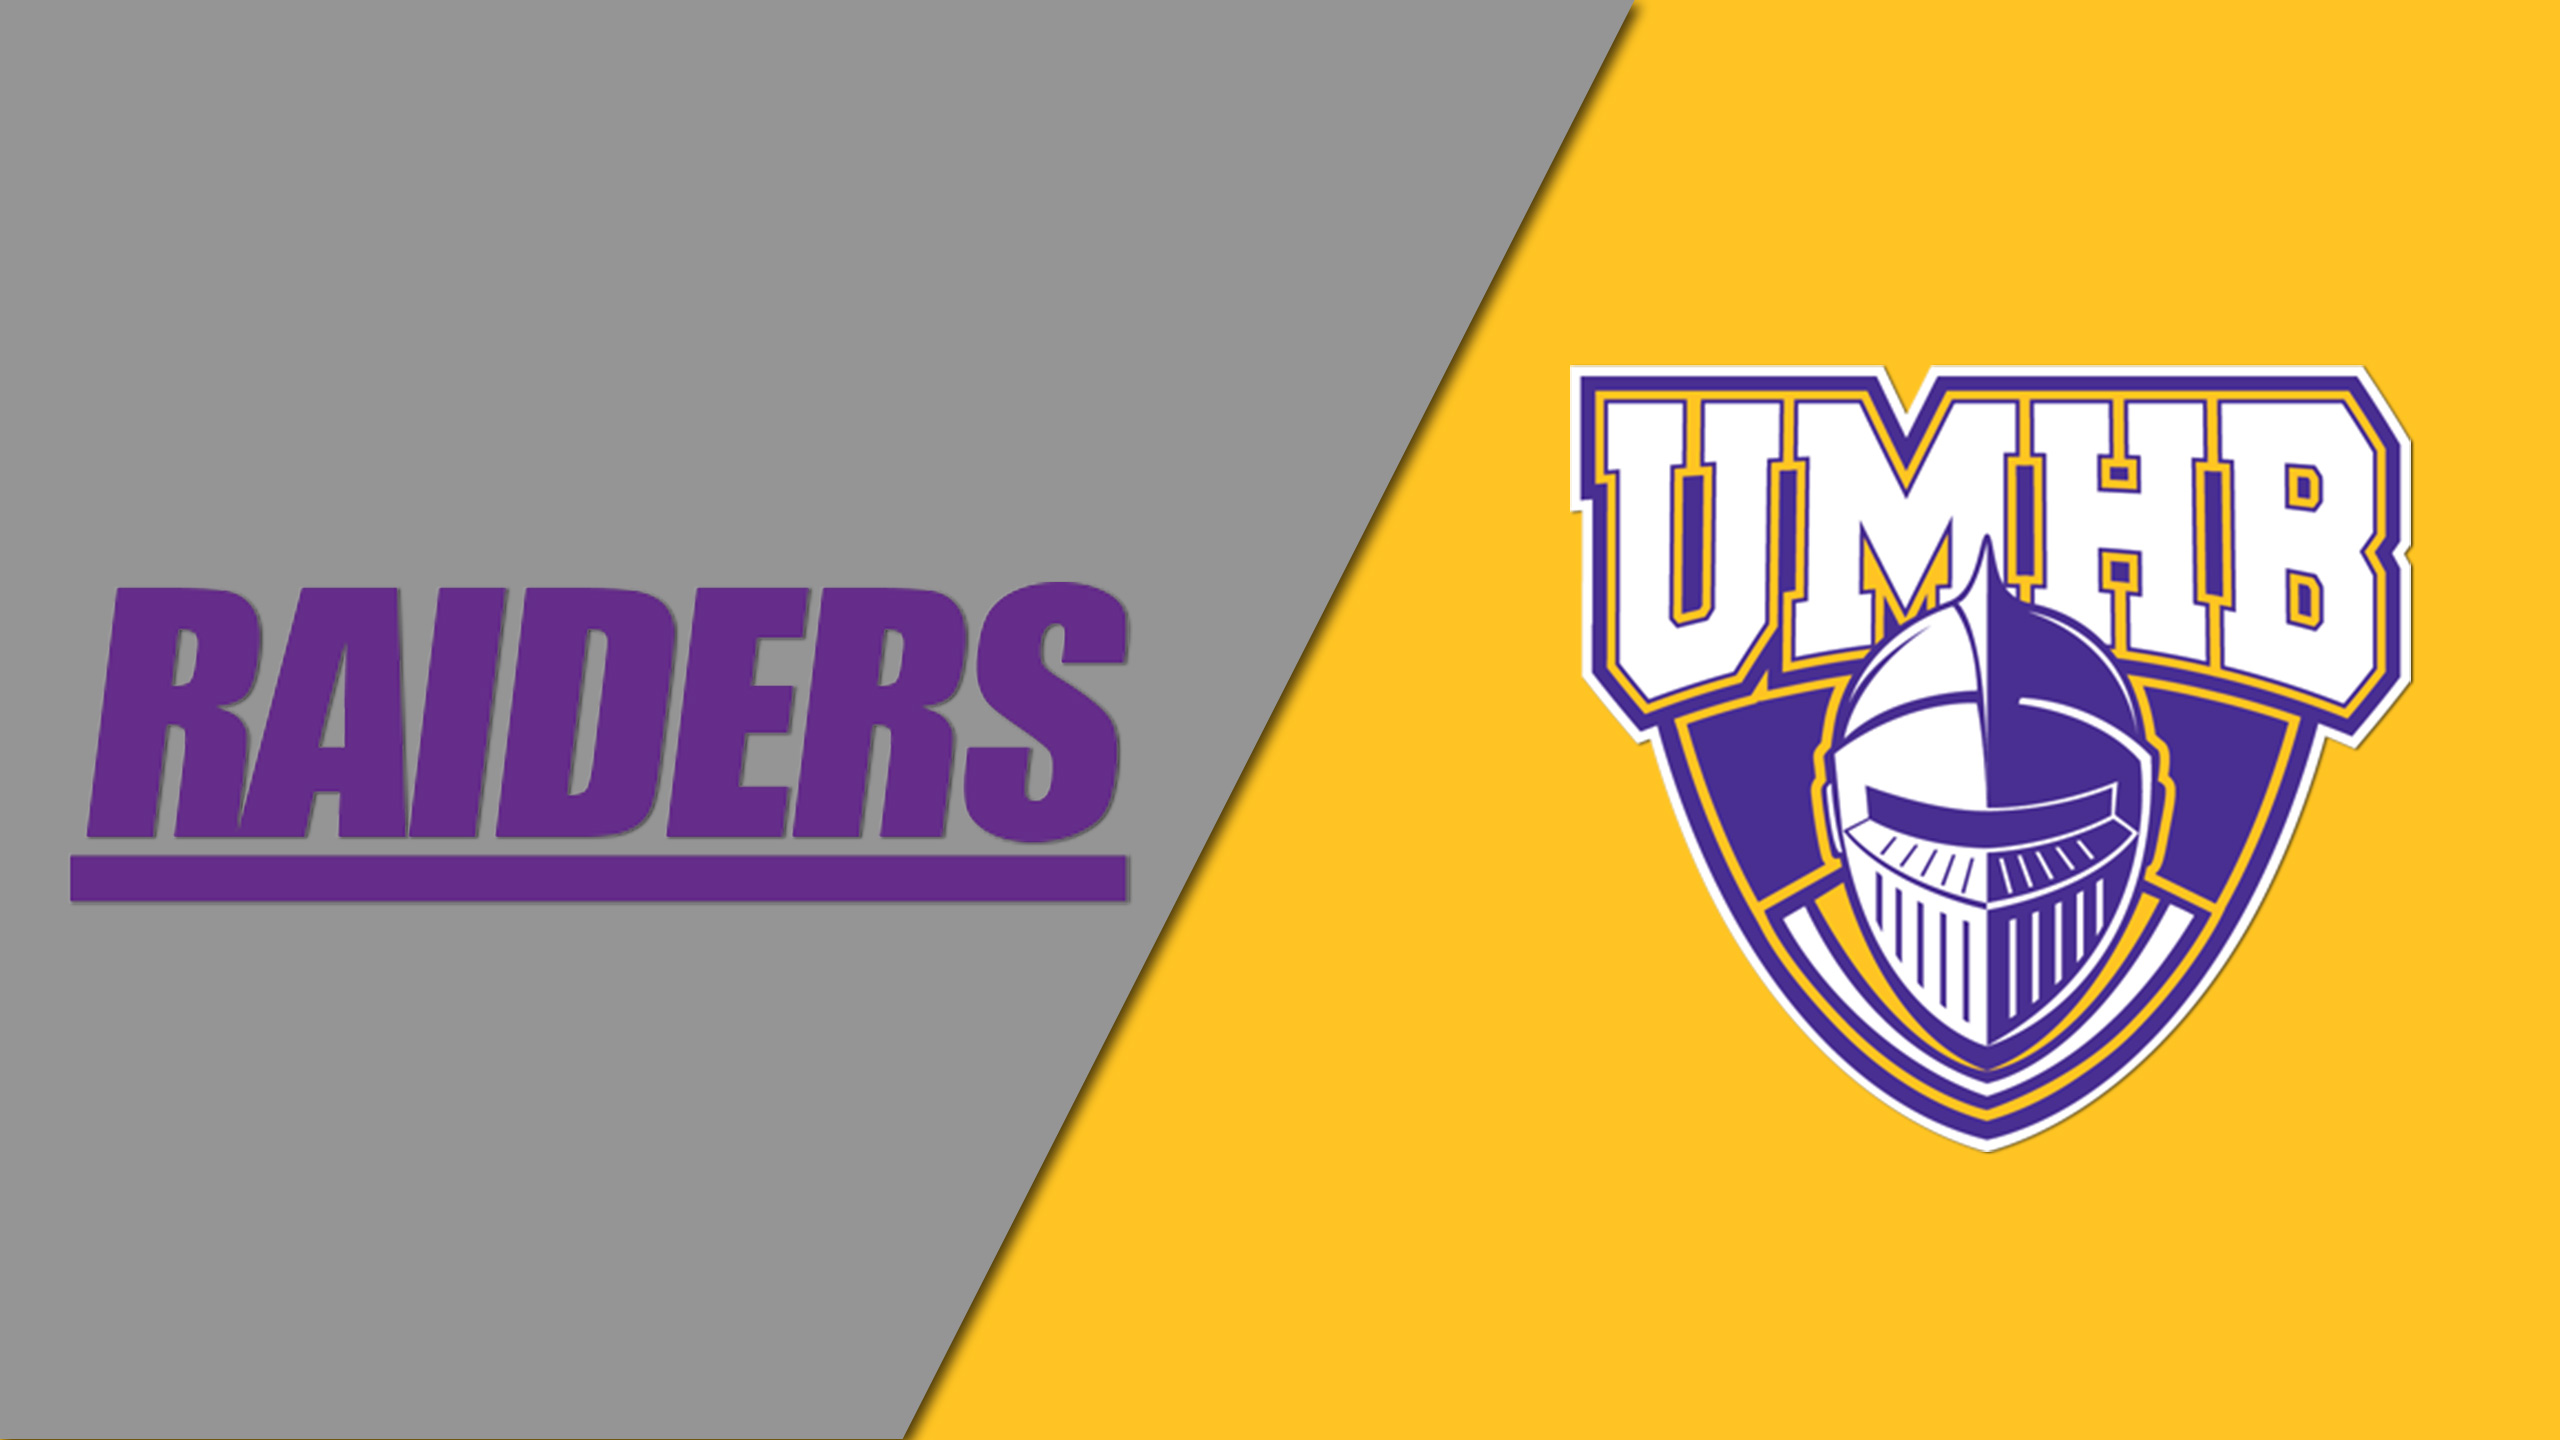 Mount Union (OH) vs. Mary Hardin-Baylor (TX) (Championship) (NCAA Division III Football Championship) (re-air)